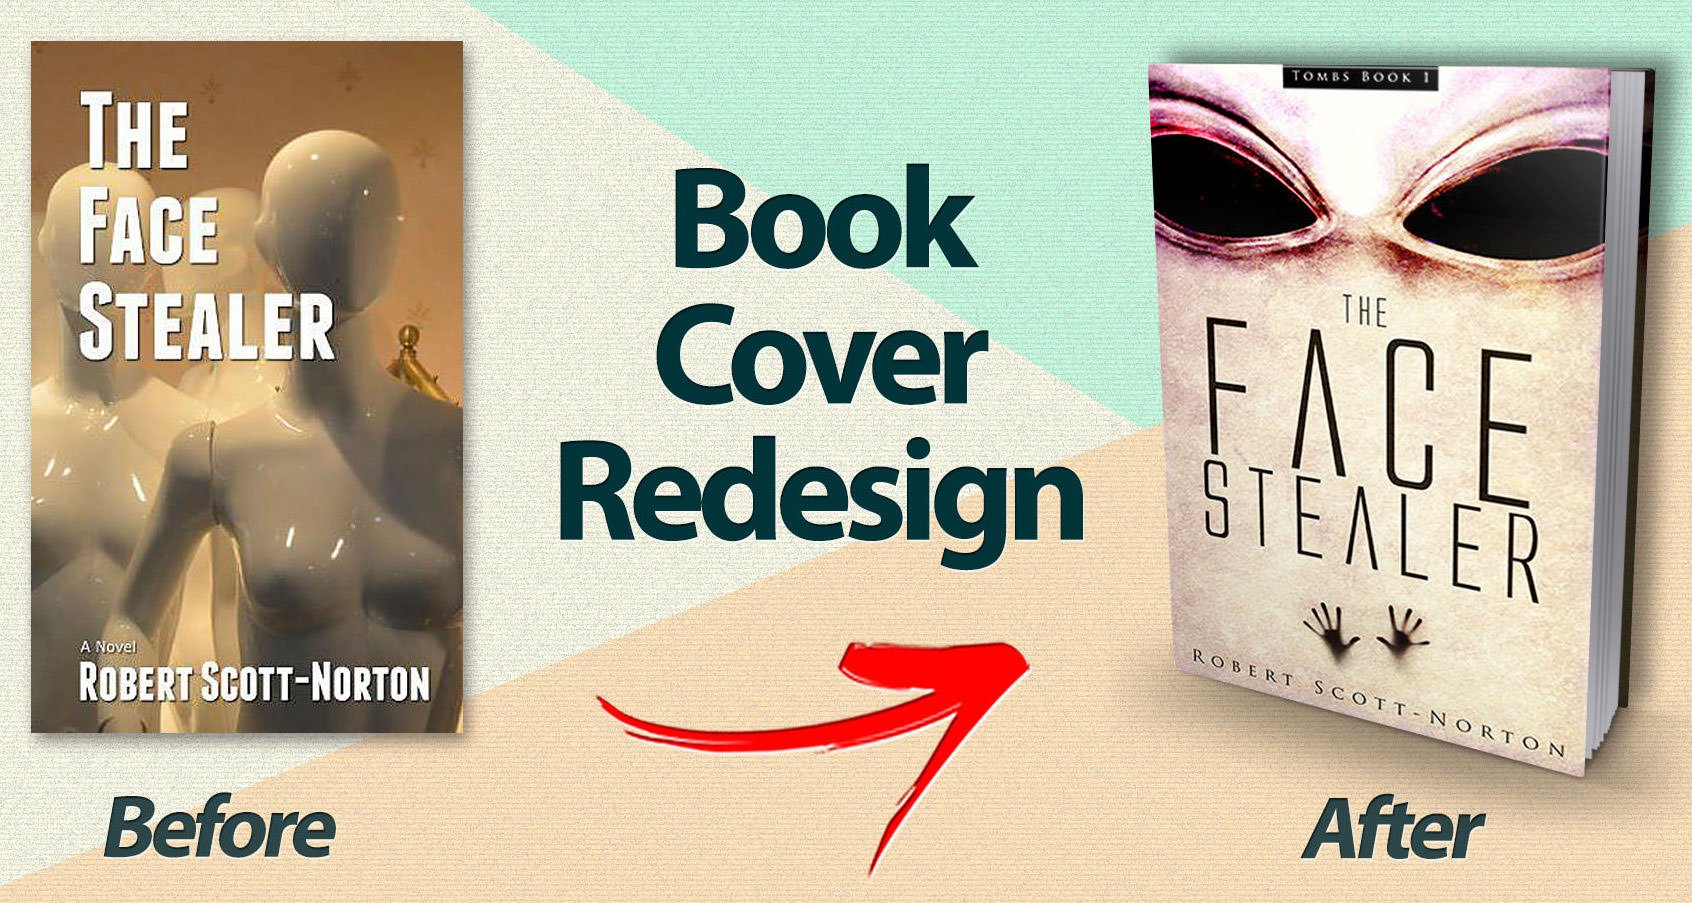 Book Coverage : Book cover redesign as marketing tool jane friedman